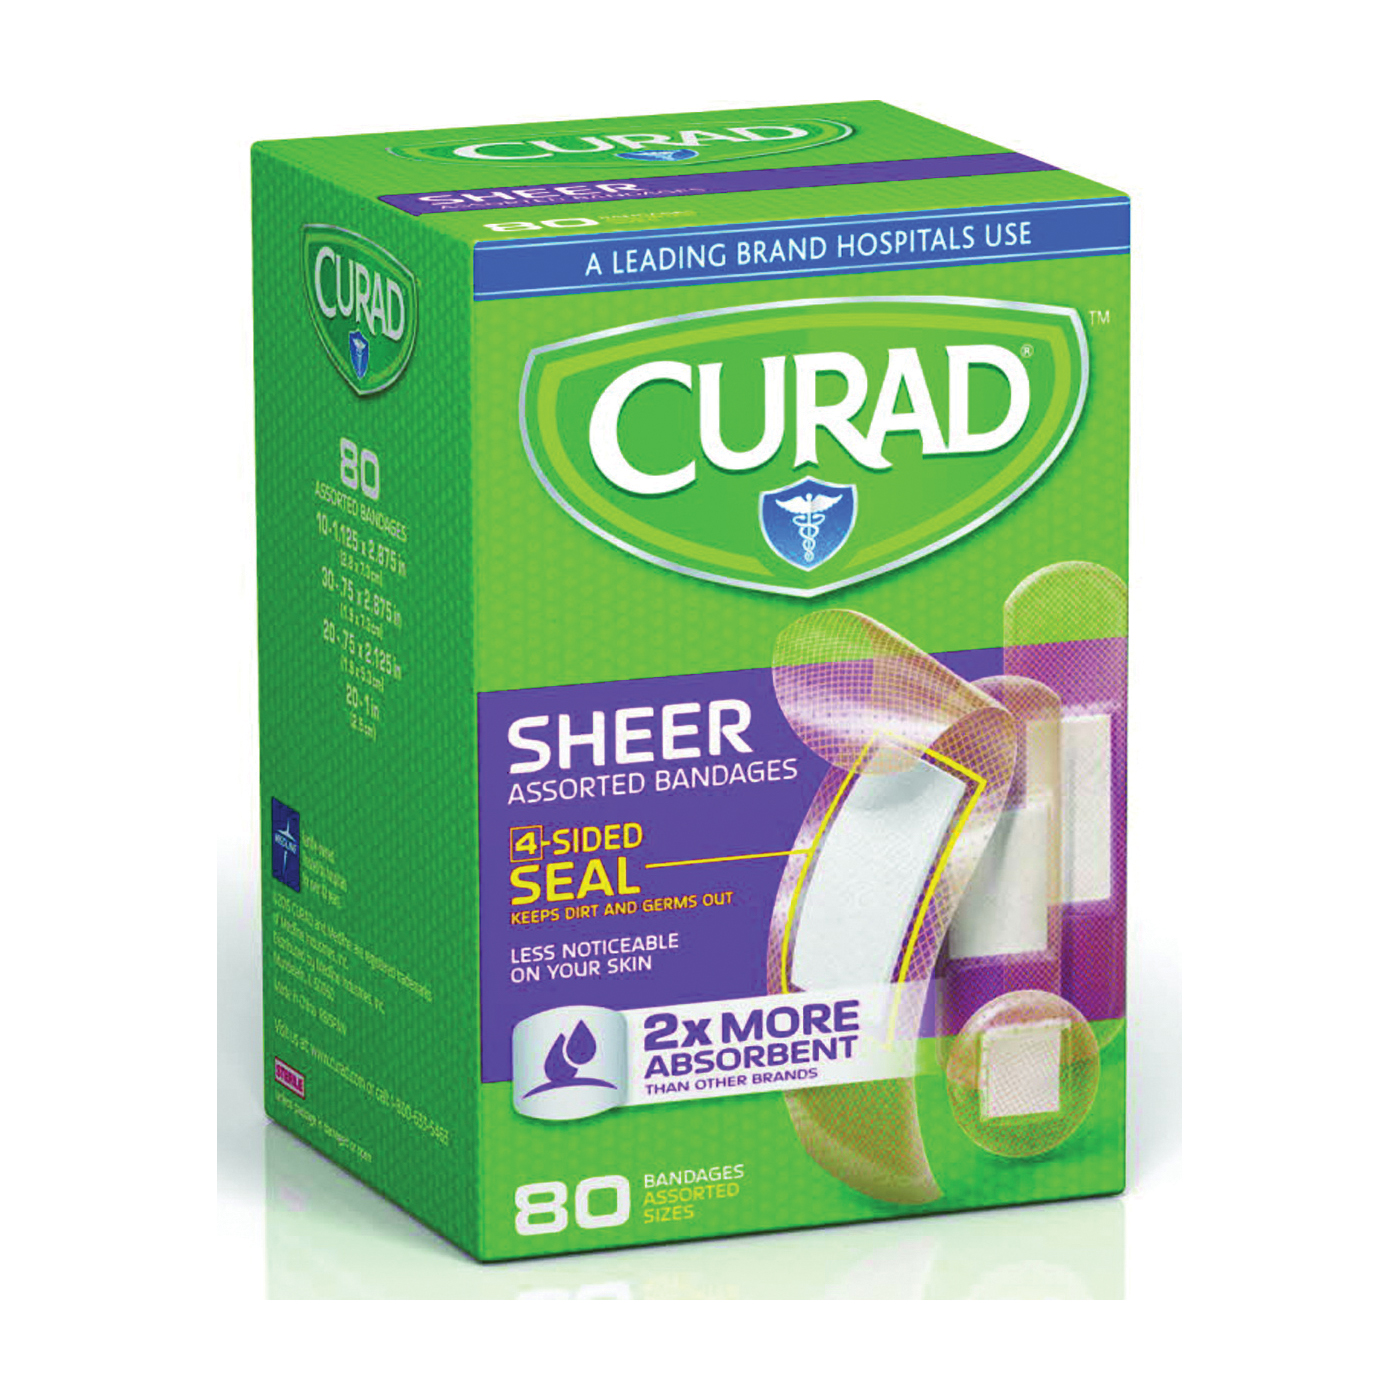 Picture of CURAD CUR45243RB Adhesive Bandage, Fabric Bandage, 24, Case